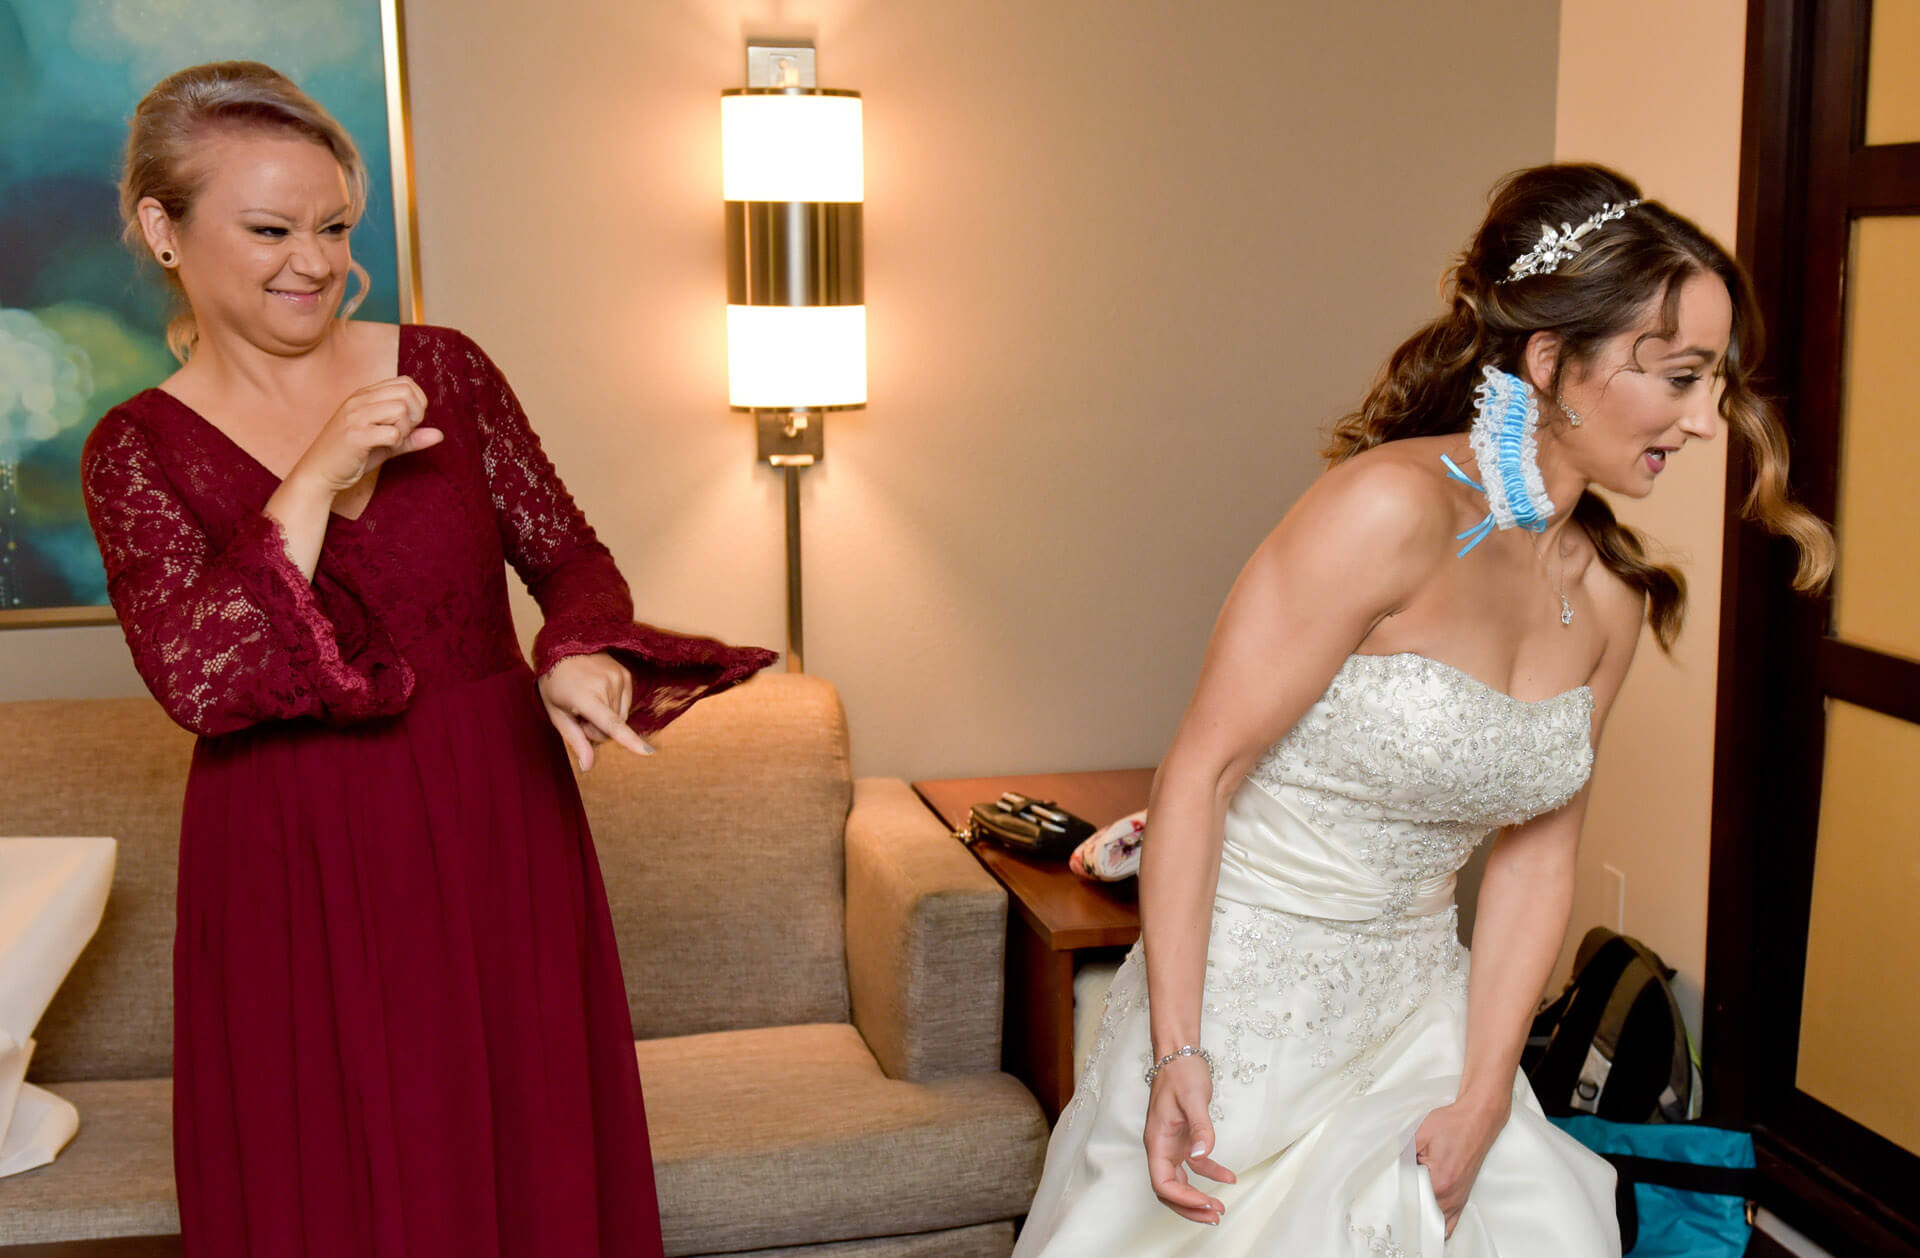 Fun, candid wedding candid moments like this bridesmaid snapping the garter at the bride, catching her totally unaware in Detroit, Michigan!